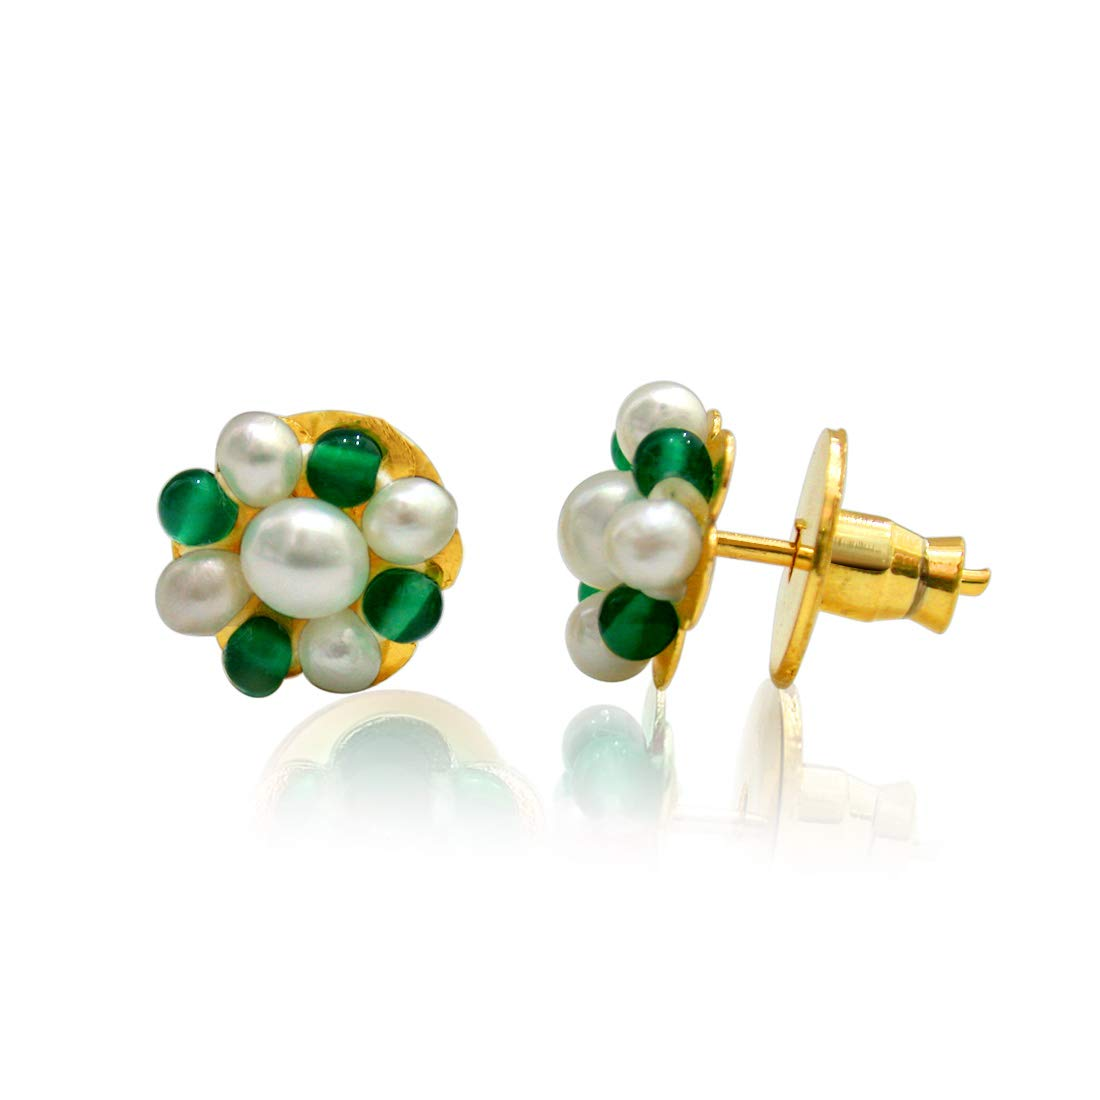 Real Freshwater Pearl & Green Onyx Beads Kuda Jodi Earrings for Women (SE110)